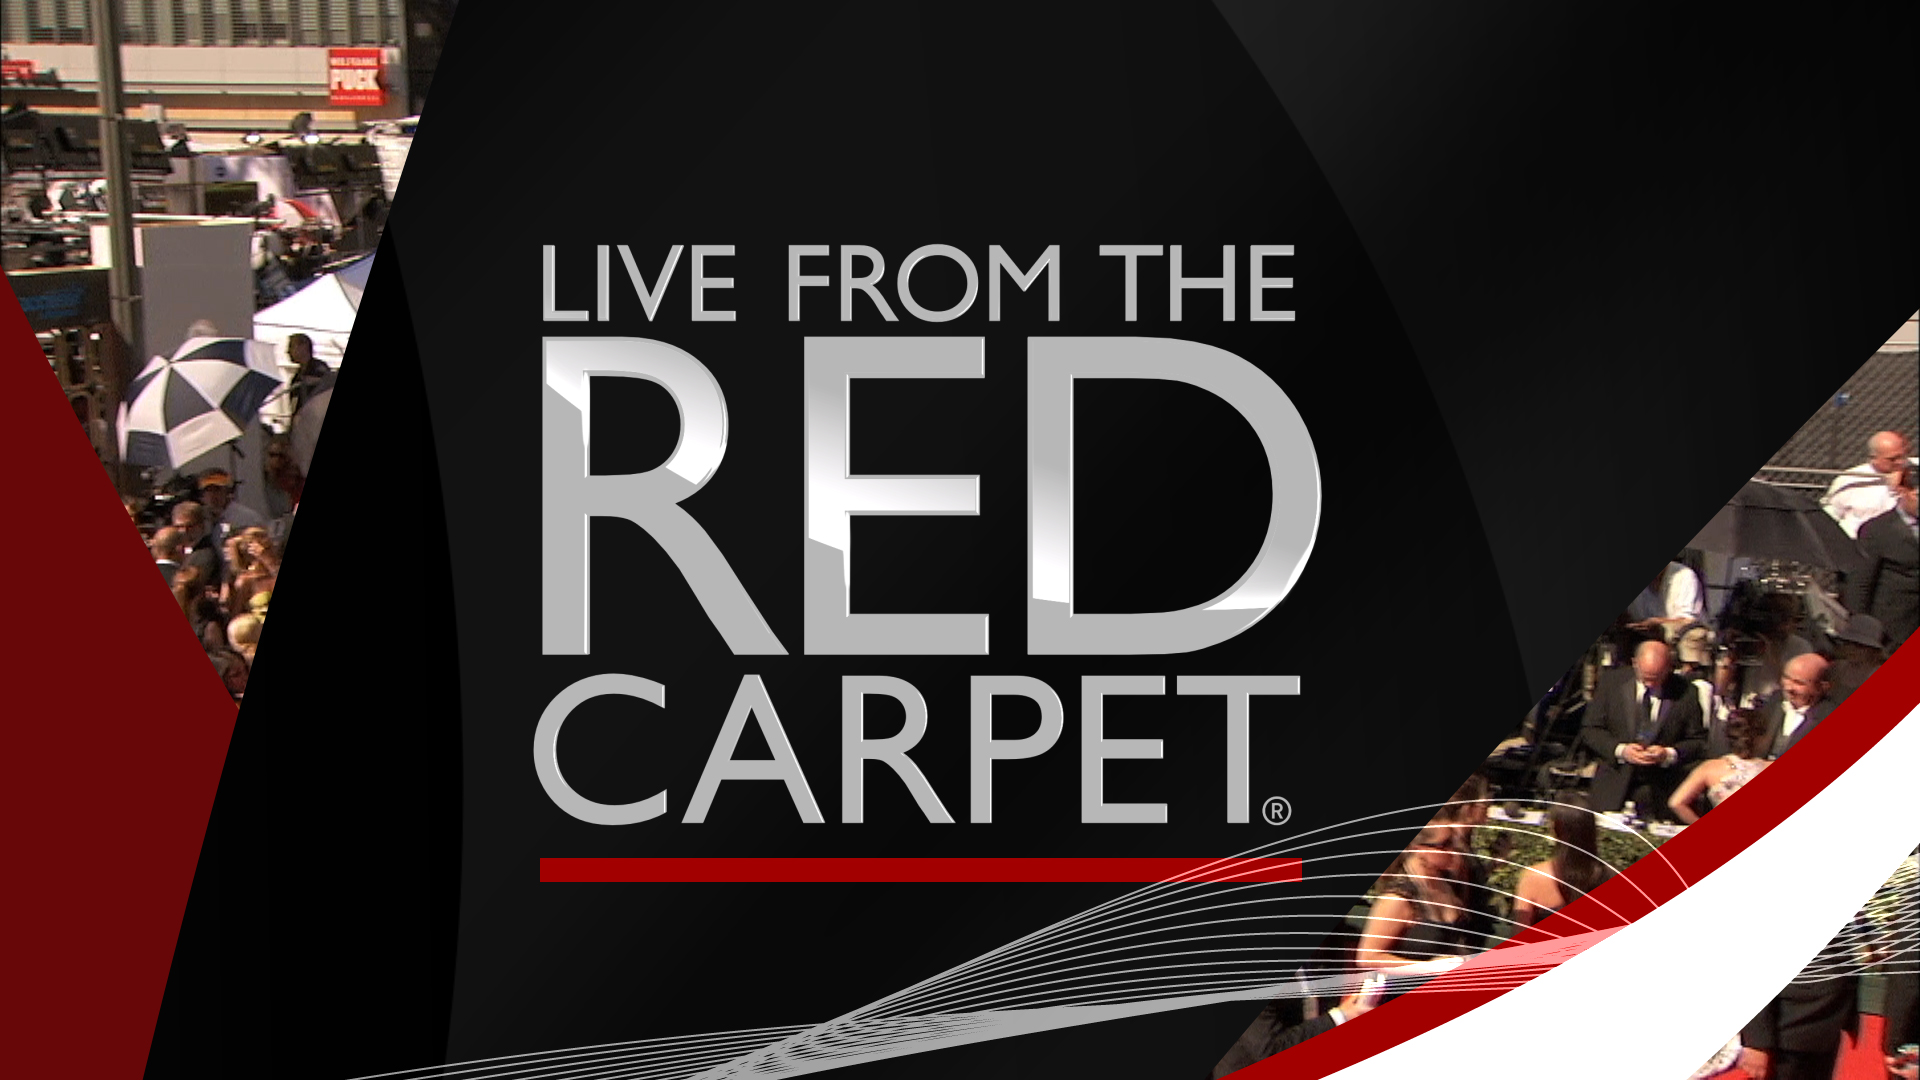 LIVE FROM THE RED CARPET - E! ENTERTAINMENT TELEVISION